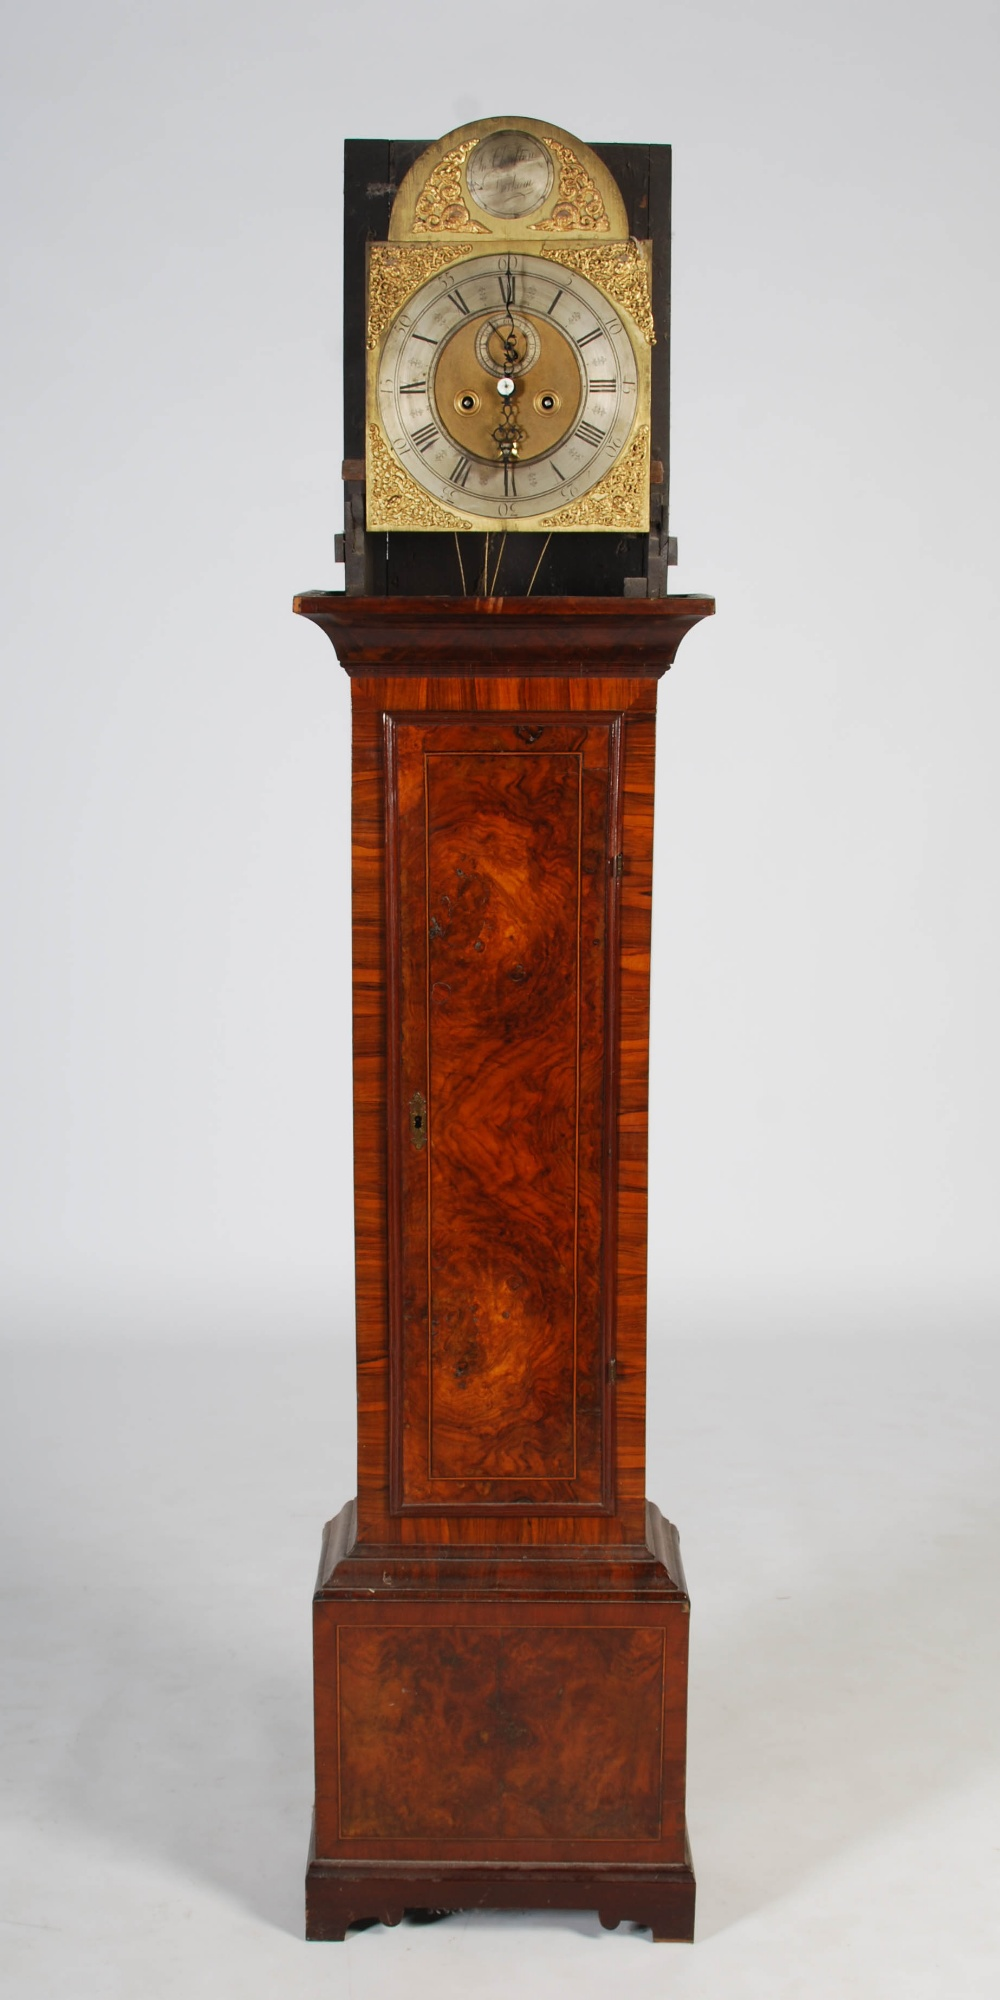 Lot 2 - A George III walnut longcase clock, Jn. Charlton, Durham, the brass dial with silvered chapter